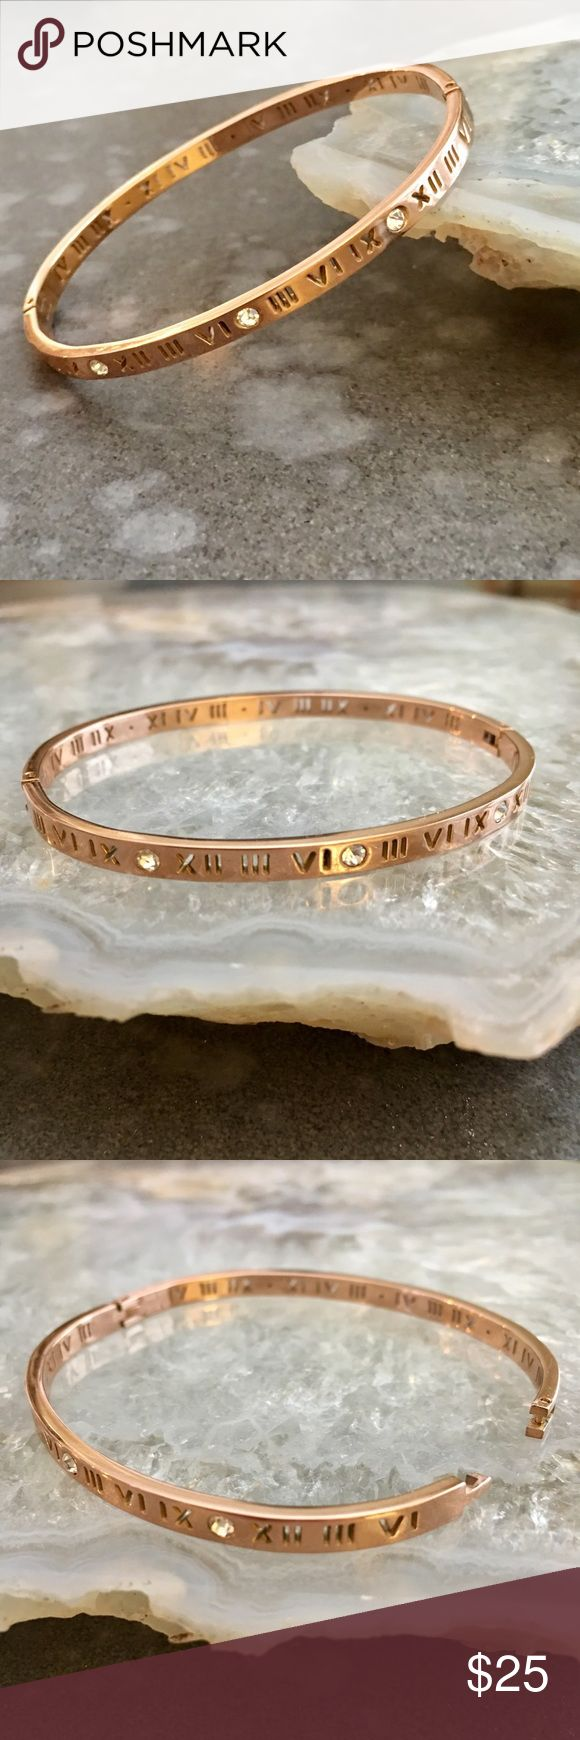 Minimalist Rose Gold Roman Numeral Bangle Bracelet Minimalist chic rose gold Roman numeral Bangle bracelet. Brand new with tags! See the matching ring also listed! So cute to pair with a chic watch or wear it by itself! ASOS Jewelry Bracelets